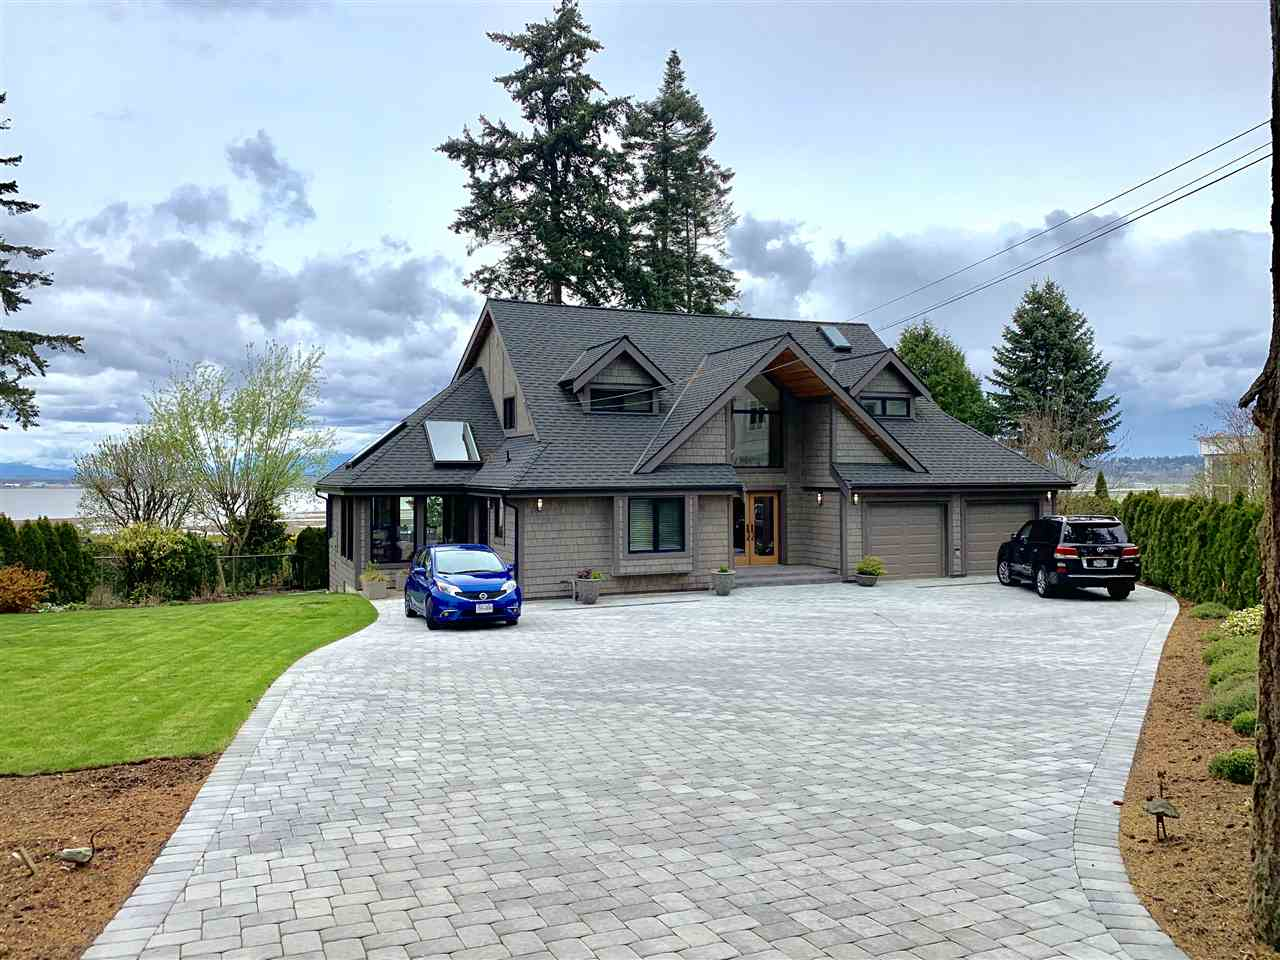 Water Access! - This beautiful home is set on one of the nicest Oceanfront lots in the White Rock/ South Surrey area. Full 180 degree ocean and mountain views from almost every room. Ovation Awards winner in 2016 for Best Exterior Renovation this home is sure not to disappoint. This exquisite home is set on a huge, private, gated water view/front lot with trail access to Nikomekl River. Enjoy sunsets almost every night from your amazing covered outdoor living space and viewing deck framed with 10 x 10 rough cut fir post and beam and frameless glass to maximize enjoyment. The interior has been updated with Gorgeous Solid Oak flooring, handcrafted Maple Kitchen cabinets, Loewen windows and doors. A five minute drive to popular Crescent Beach and five minutes to the highway.